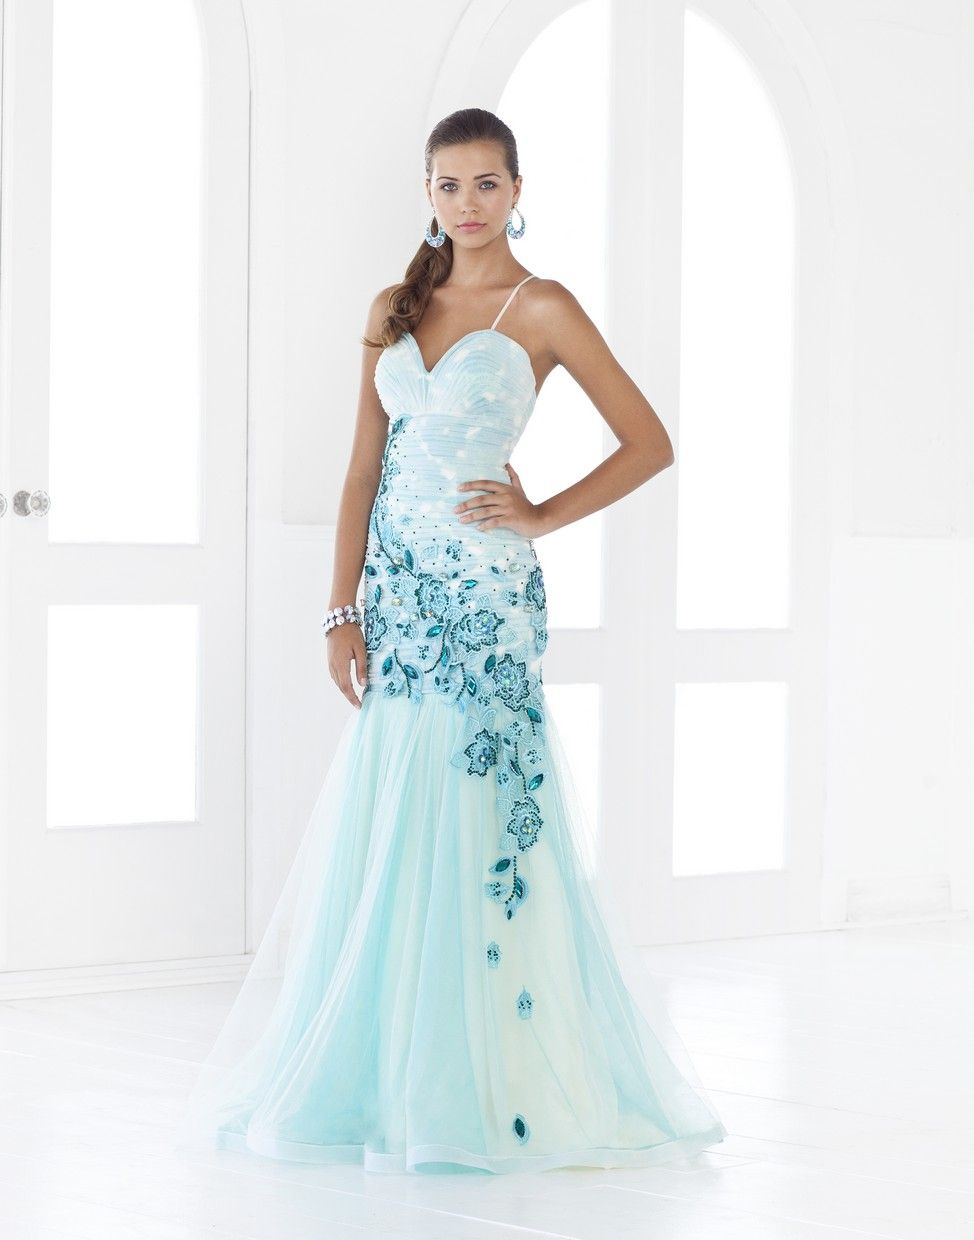 teal dresses for wedding 00 Blush Dress Sophisticated Ombre Tulle Gown Teal wedding dress with teal blue embroidery